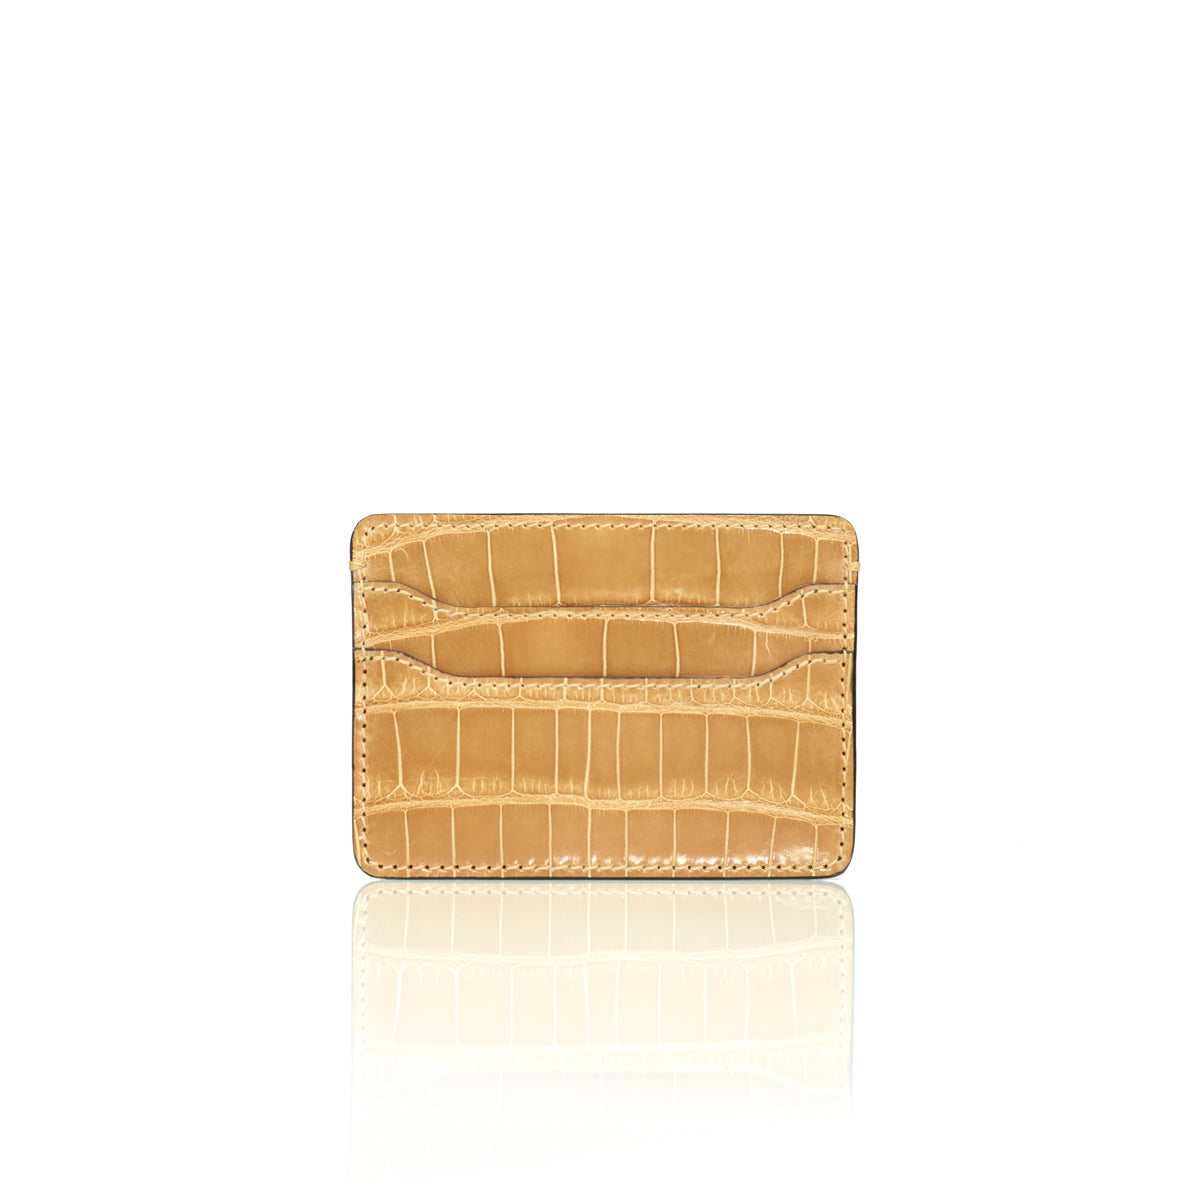 Credit Card Case - Sand Dune Alligator